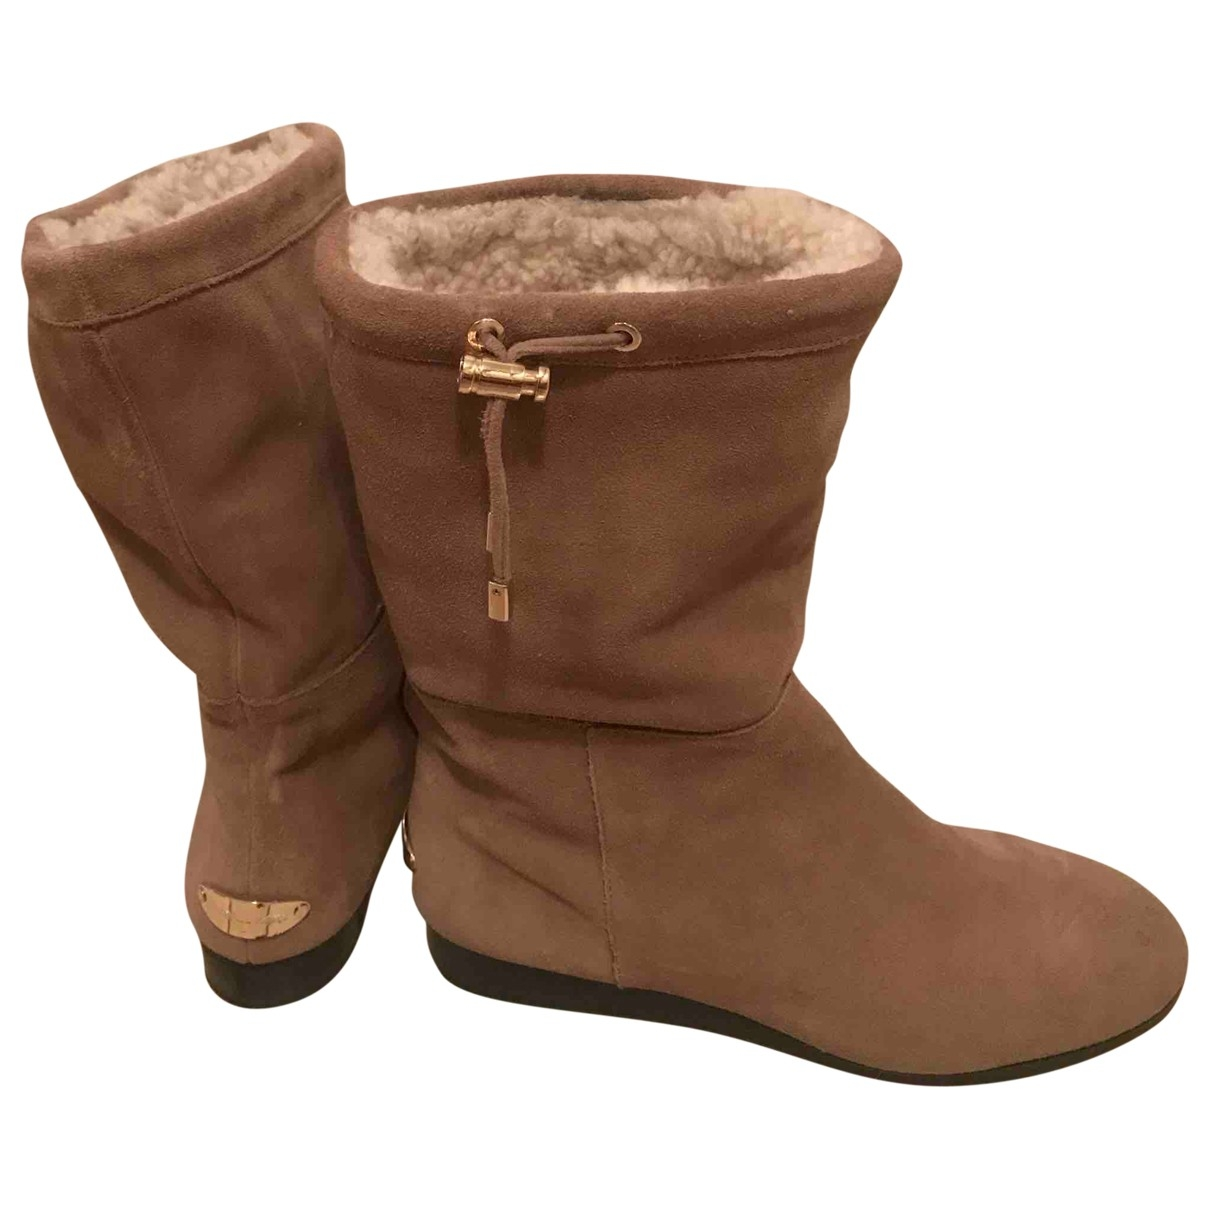 Michael Kors \N Beige Leather Boots for Women 39.5 EU